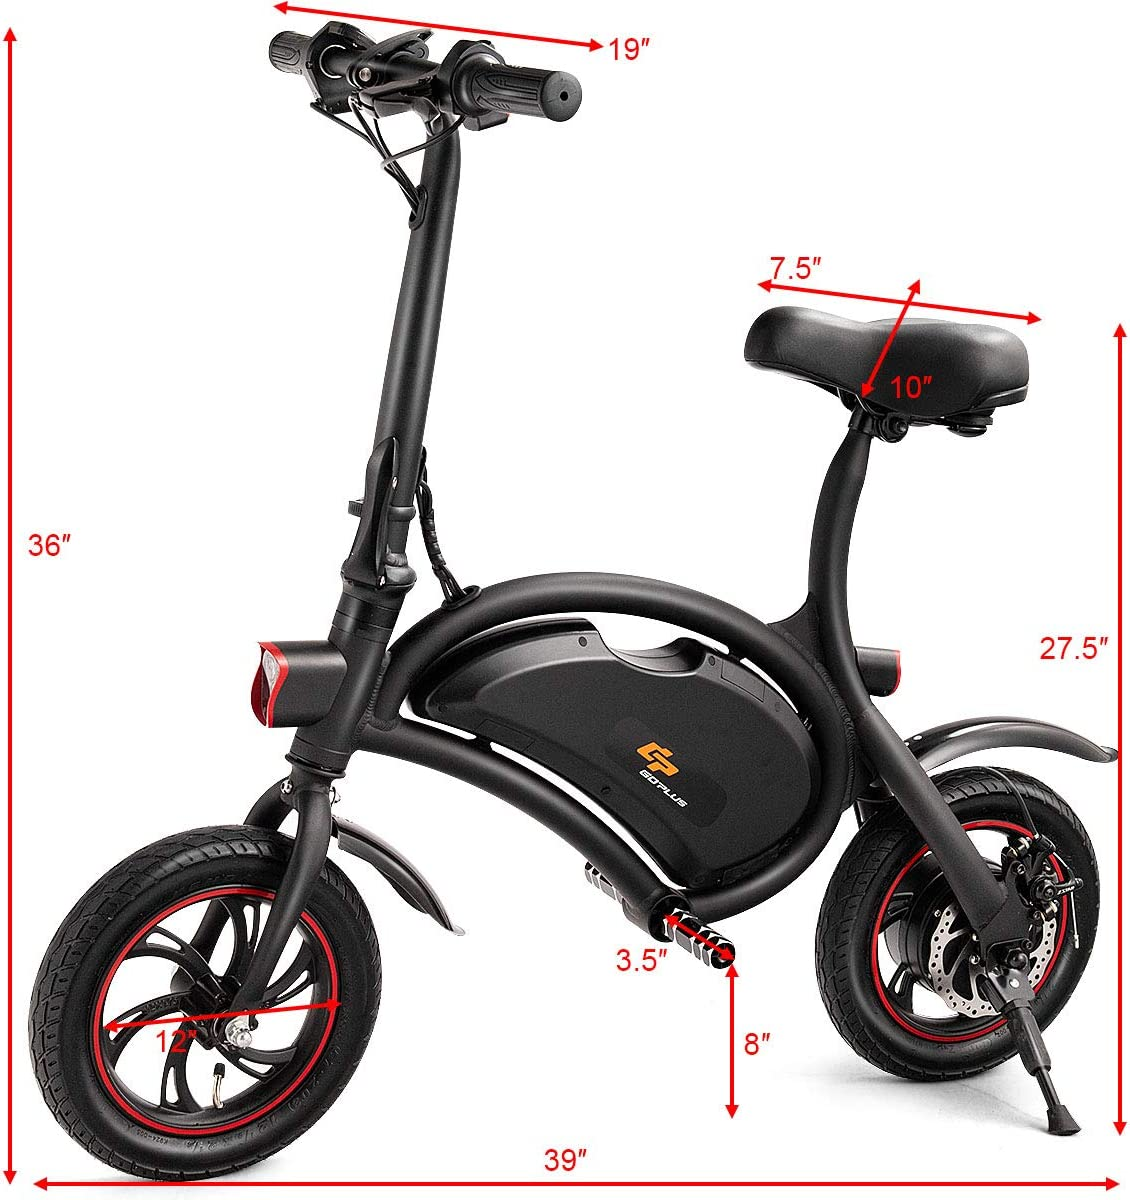 S AFSTAR Safstar Collapsible E Bike Waterproof 12 Miles Range Scooter Electric Scooter Sprinter Bike App Enabled